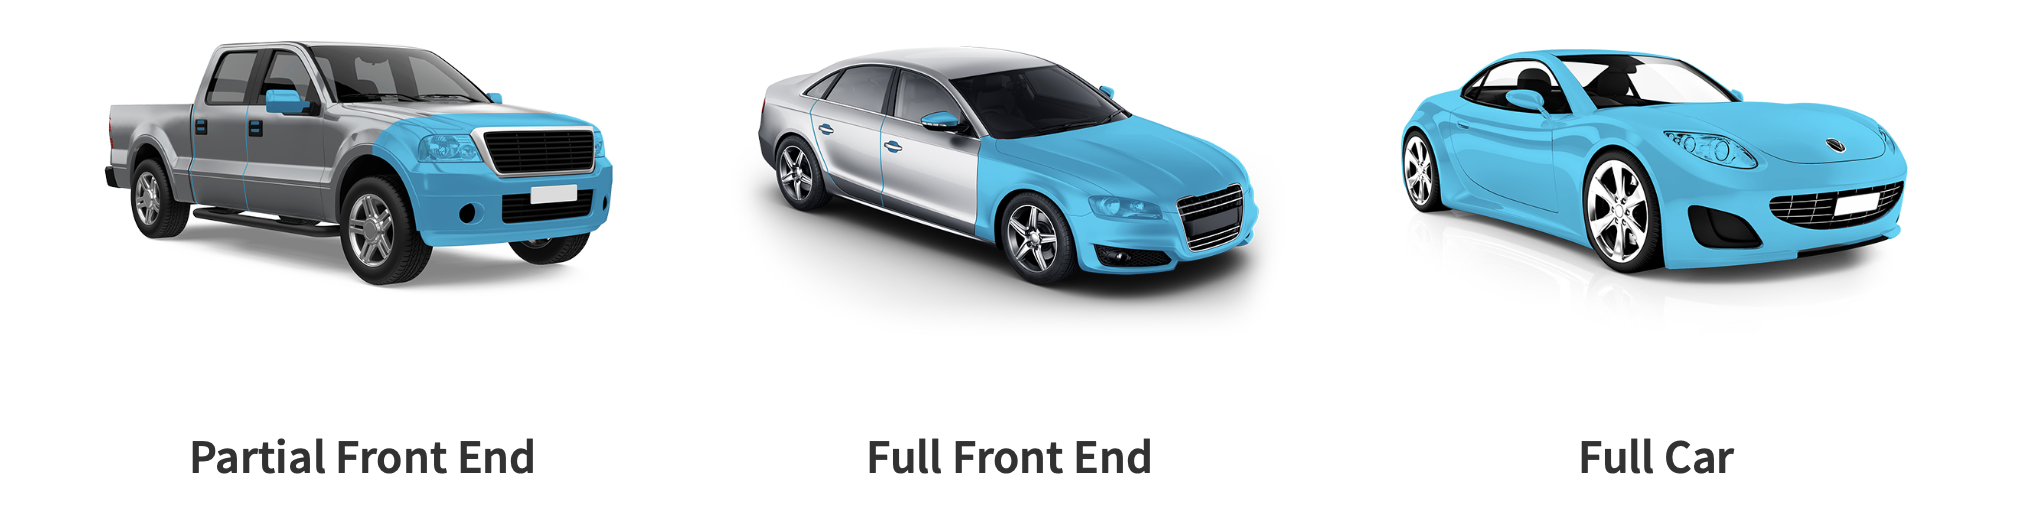 Auto Painting for Partial Front End, Full Front End, or Full Car Protection